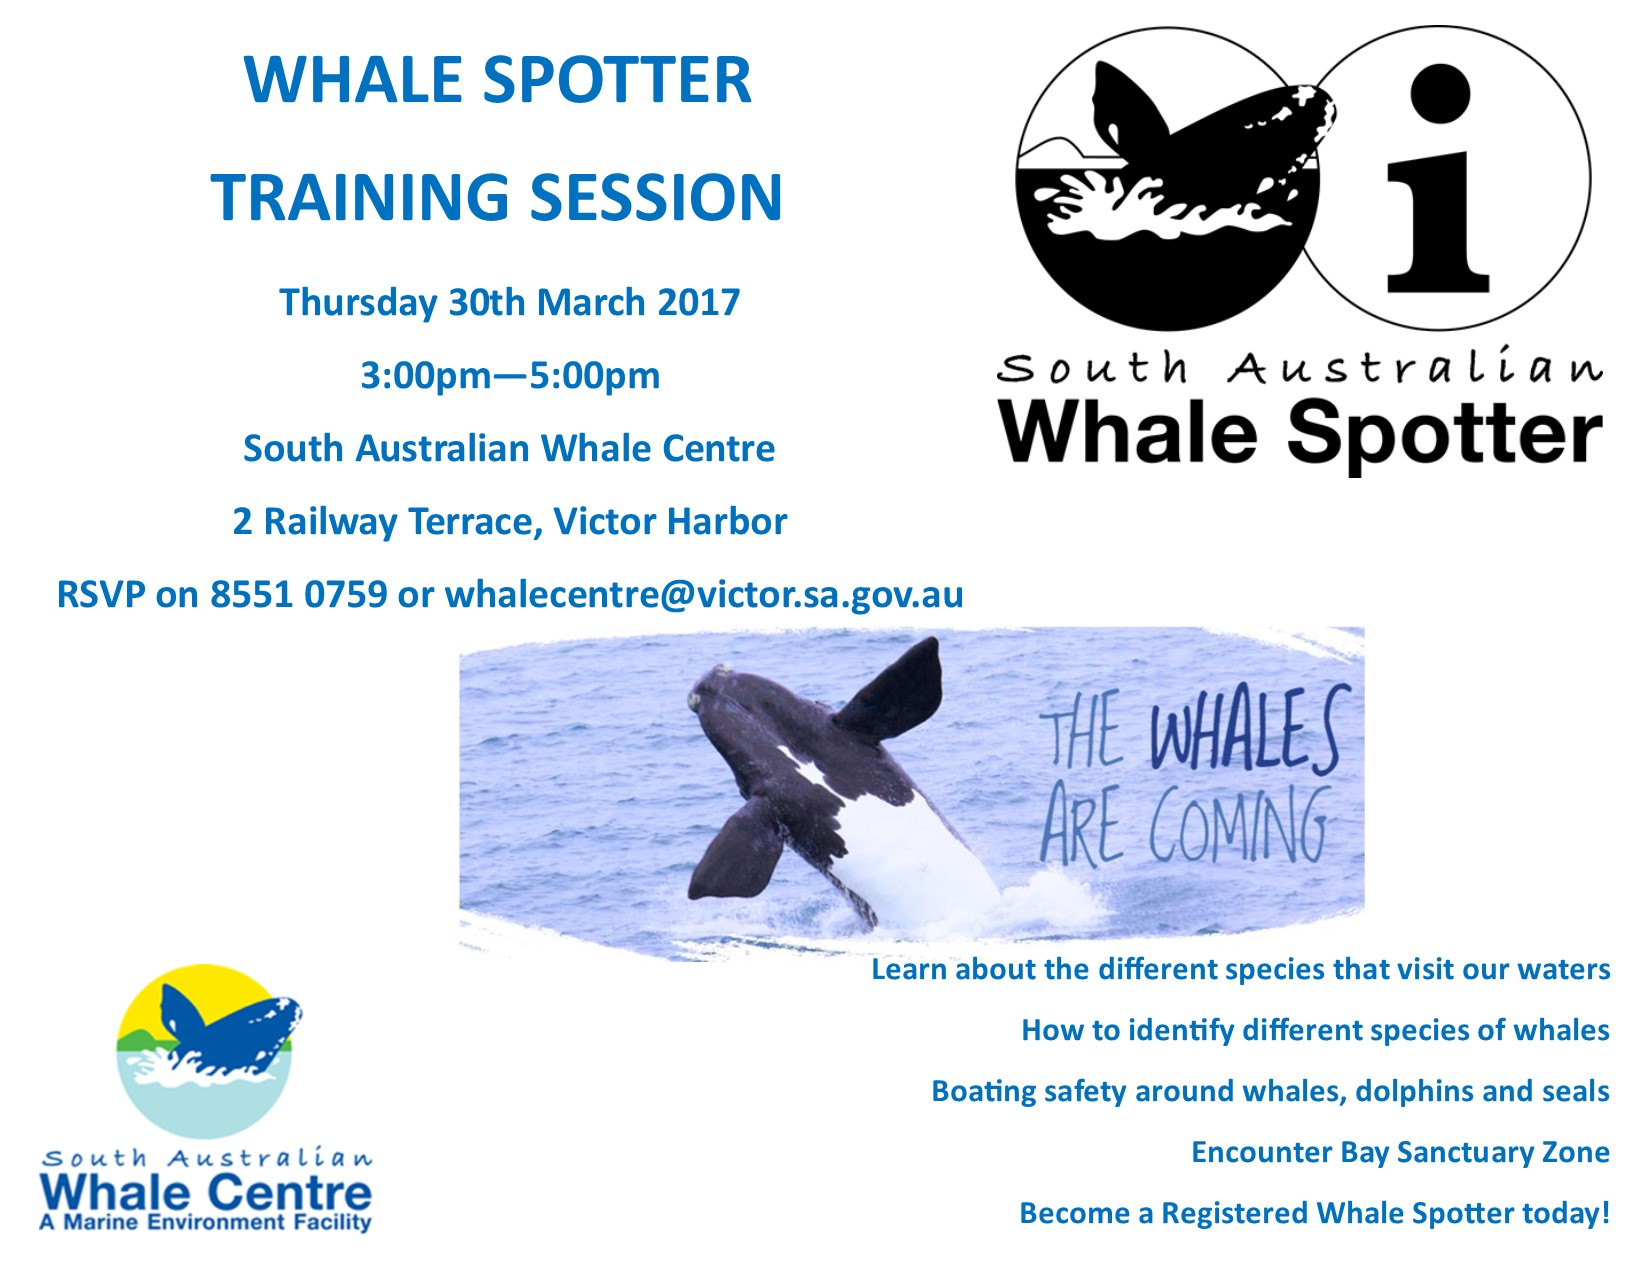 whale-spotter-training-advertising-poster-march-2017